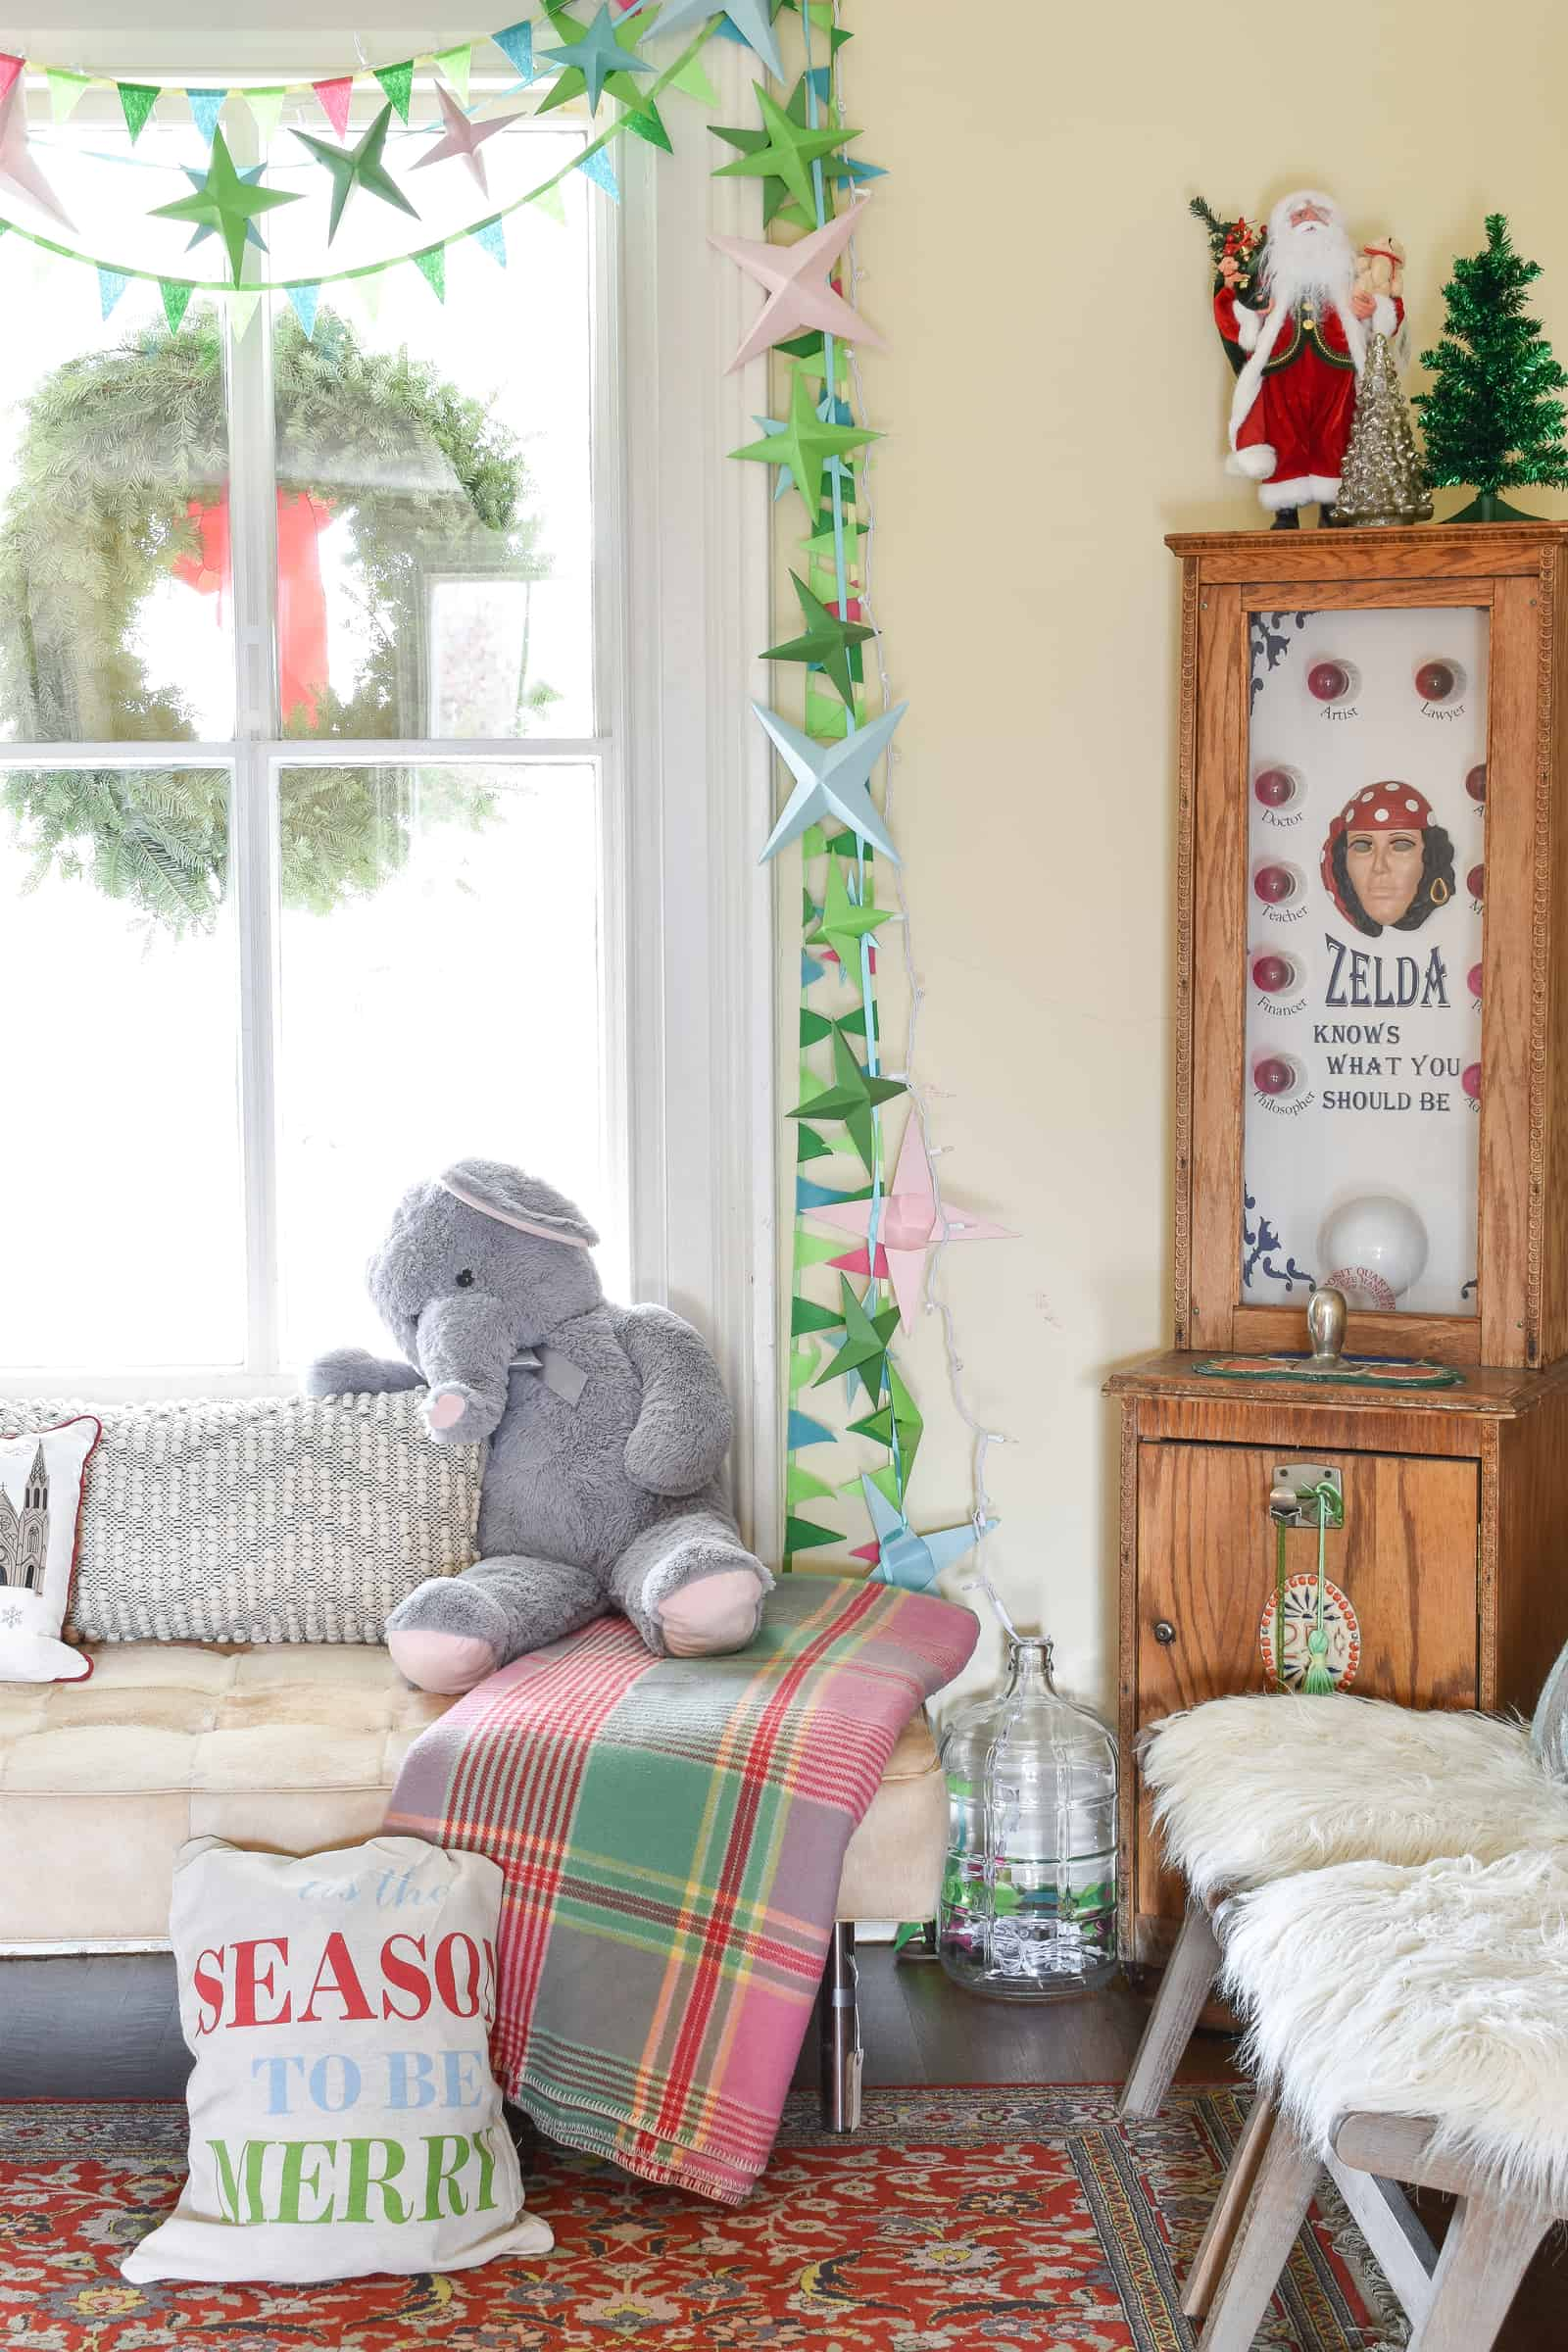 flea market details in holiday space